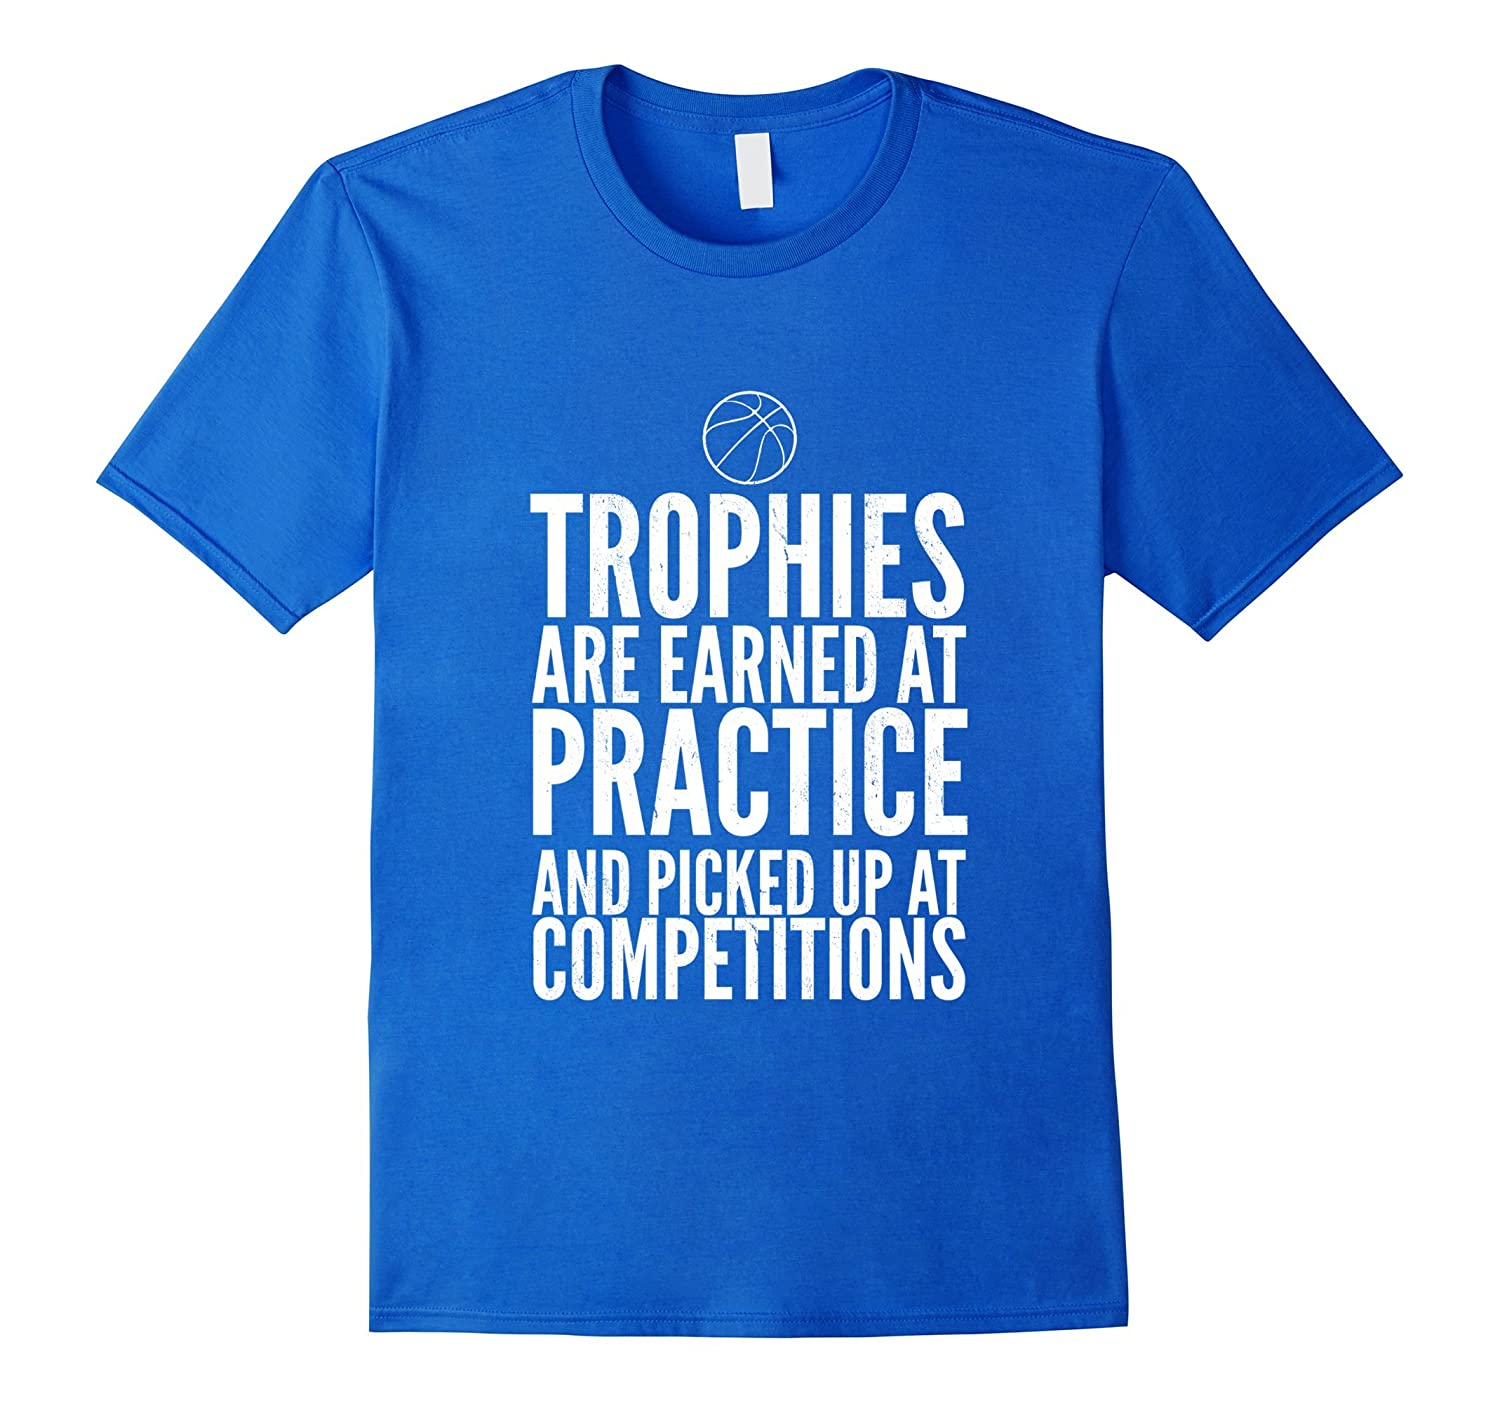 Trophies Earned At Practice Basketball Motivation Sports Tee Pl